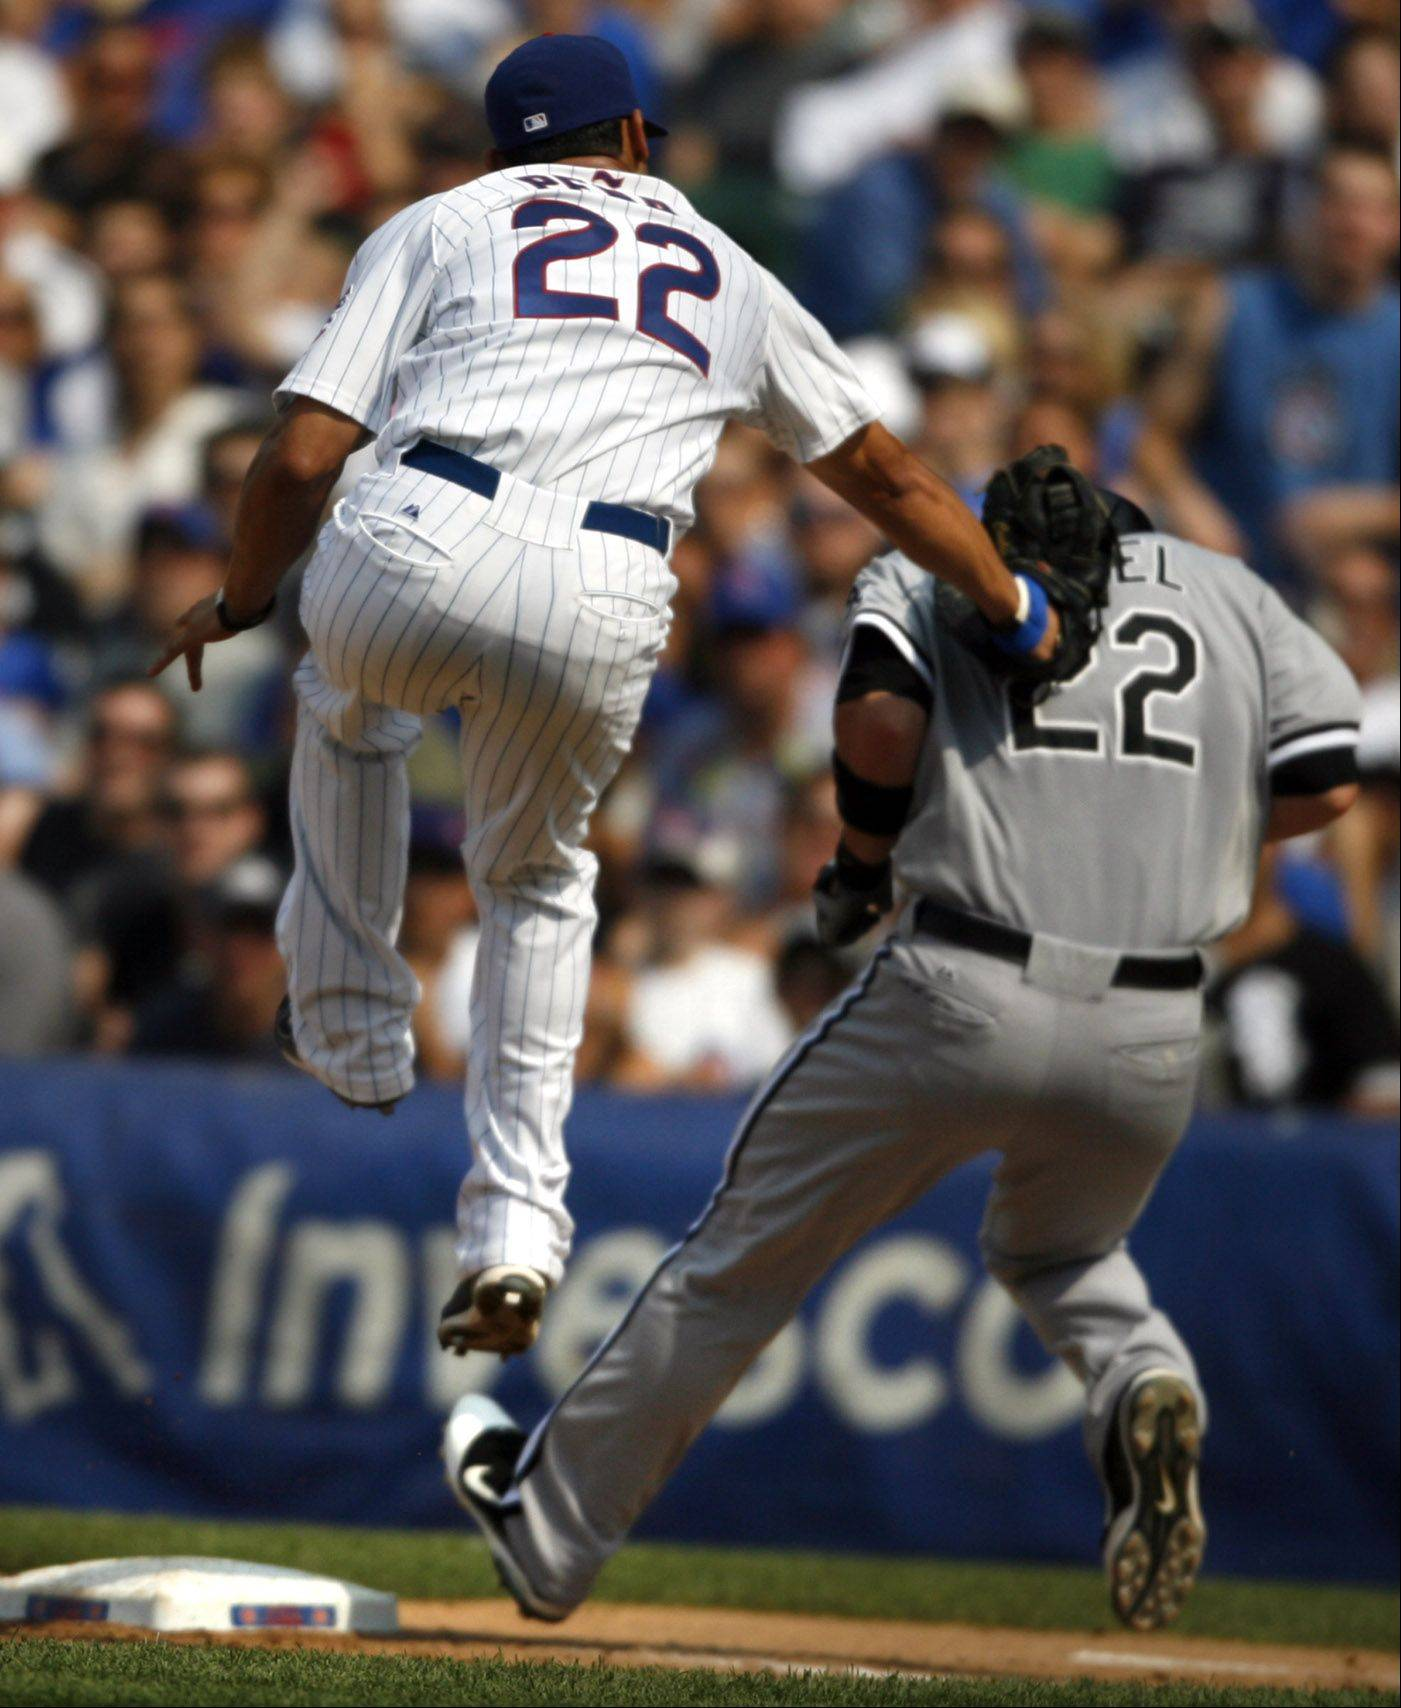 Cubs Brent Morel, in mid air, tags White Sox Carlos Pena out at first at Wrigley Field on Saturday.